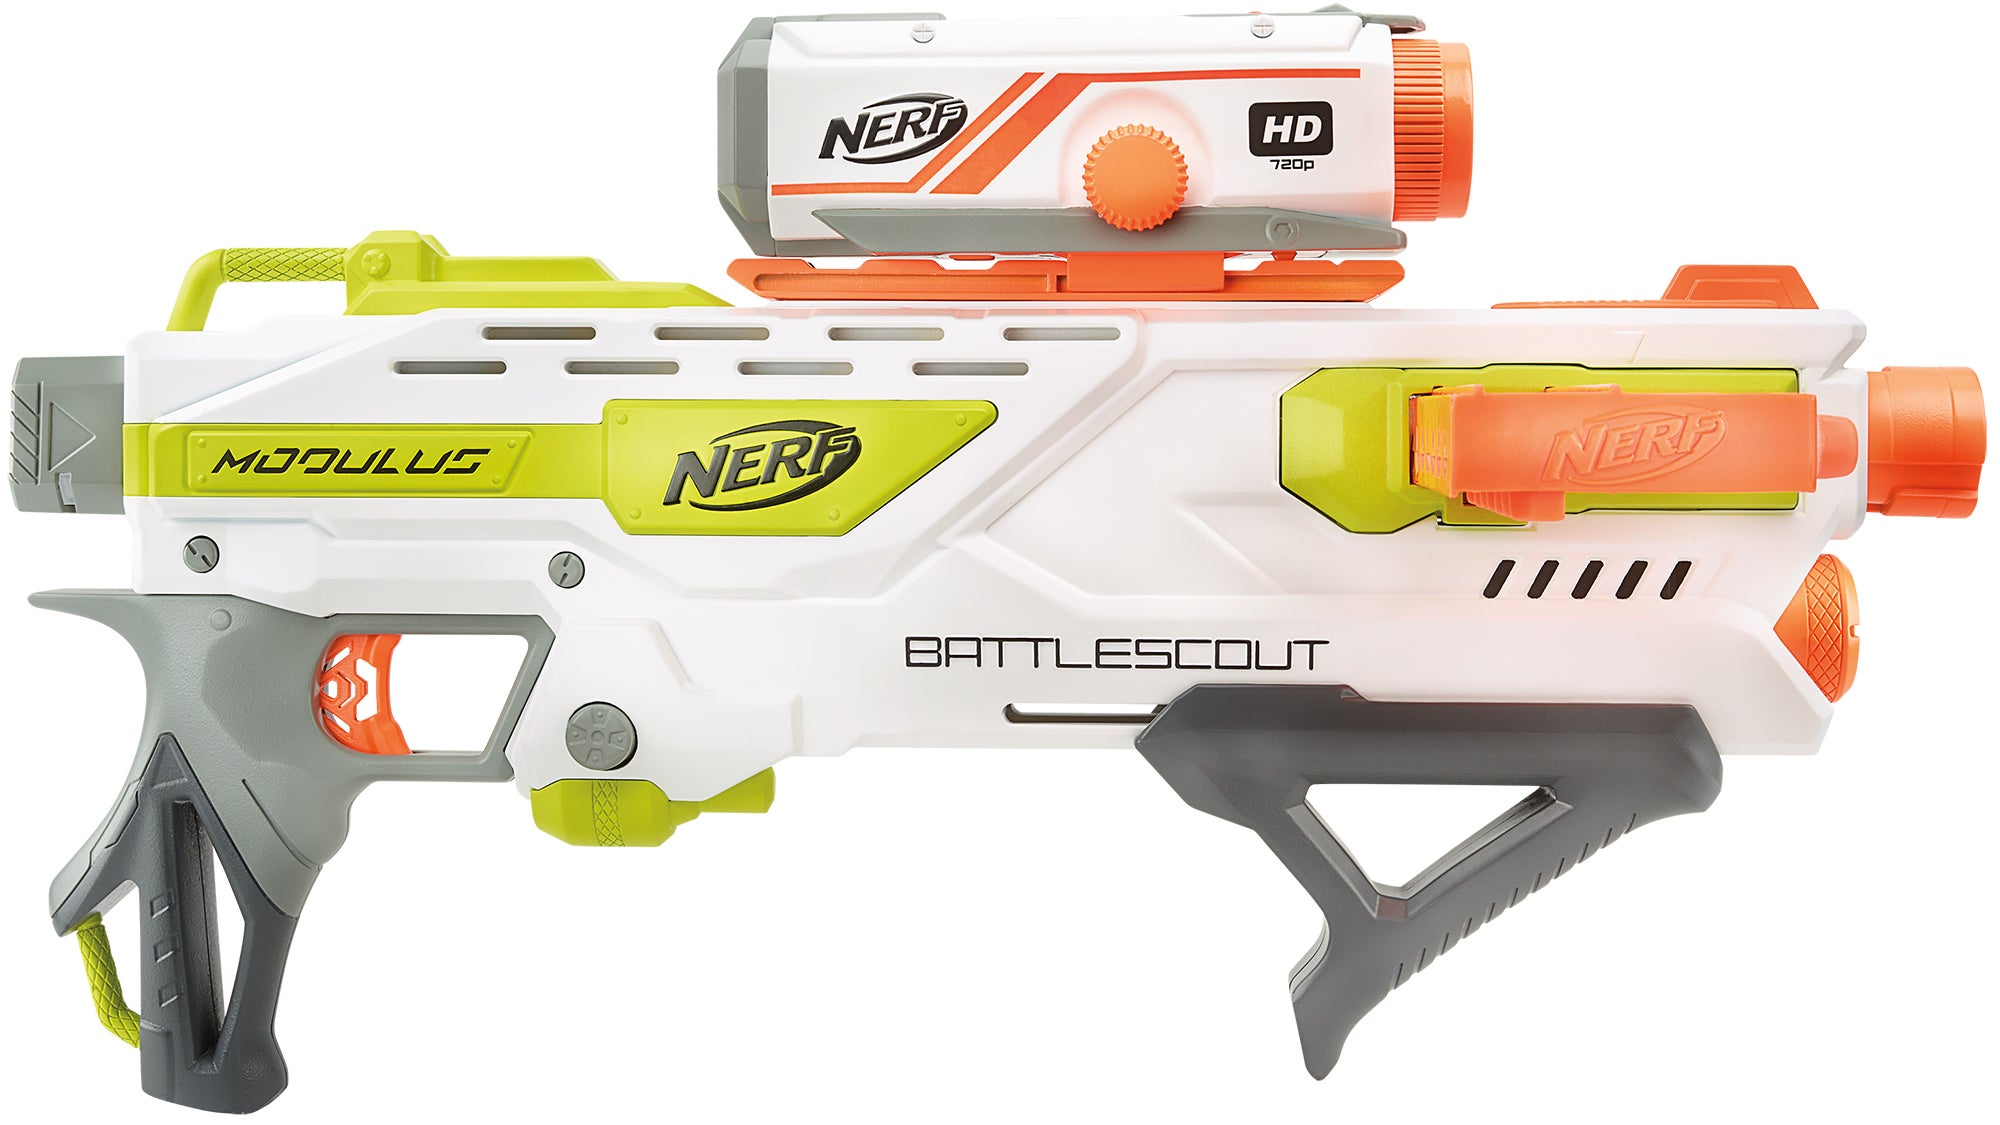 Nerf's Finally Made A Blaster With A Removable Action Camera